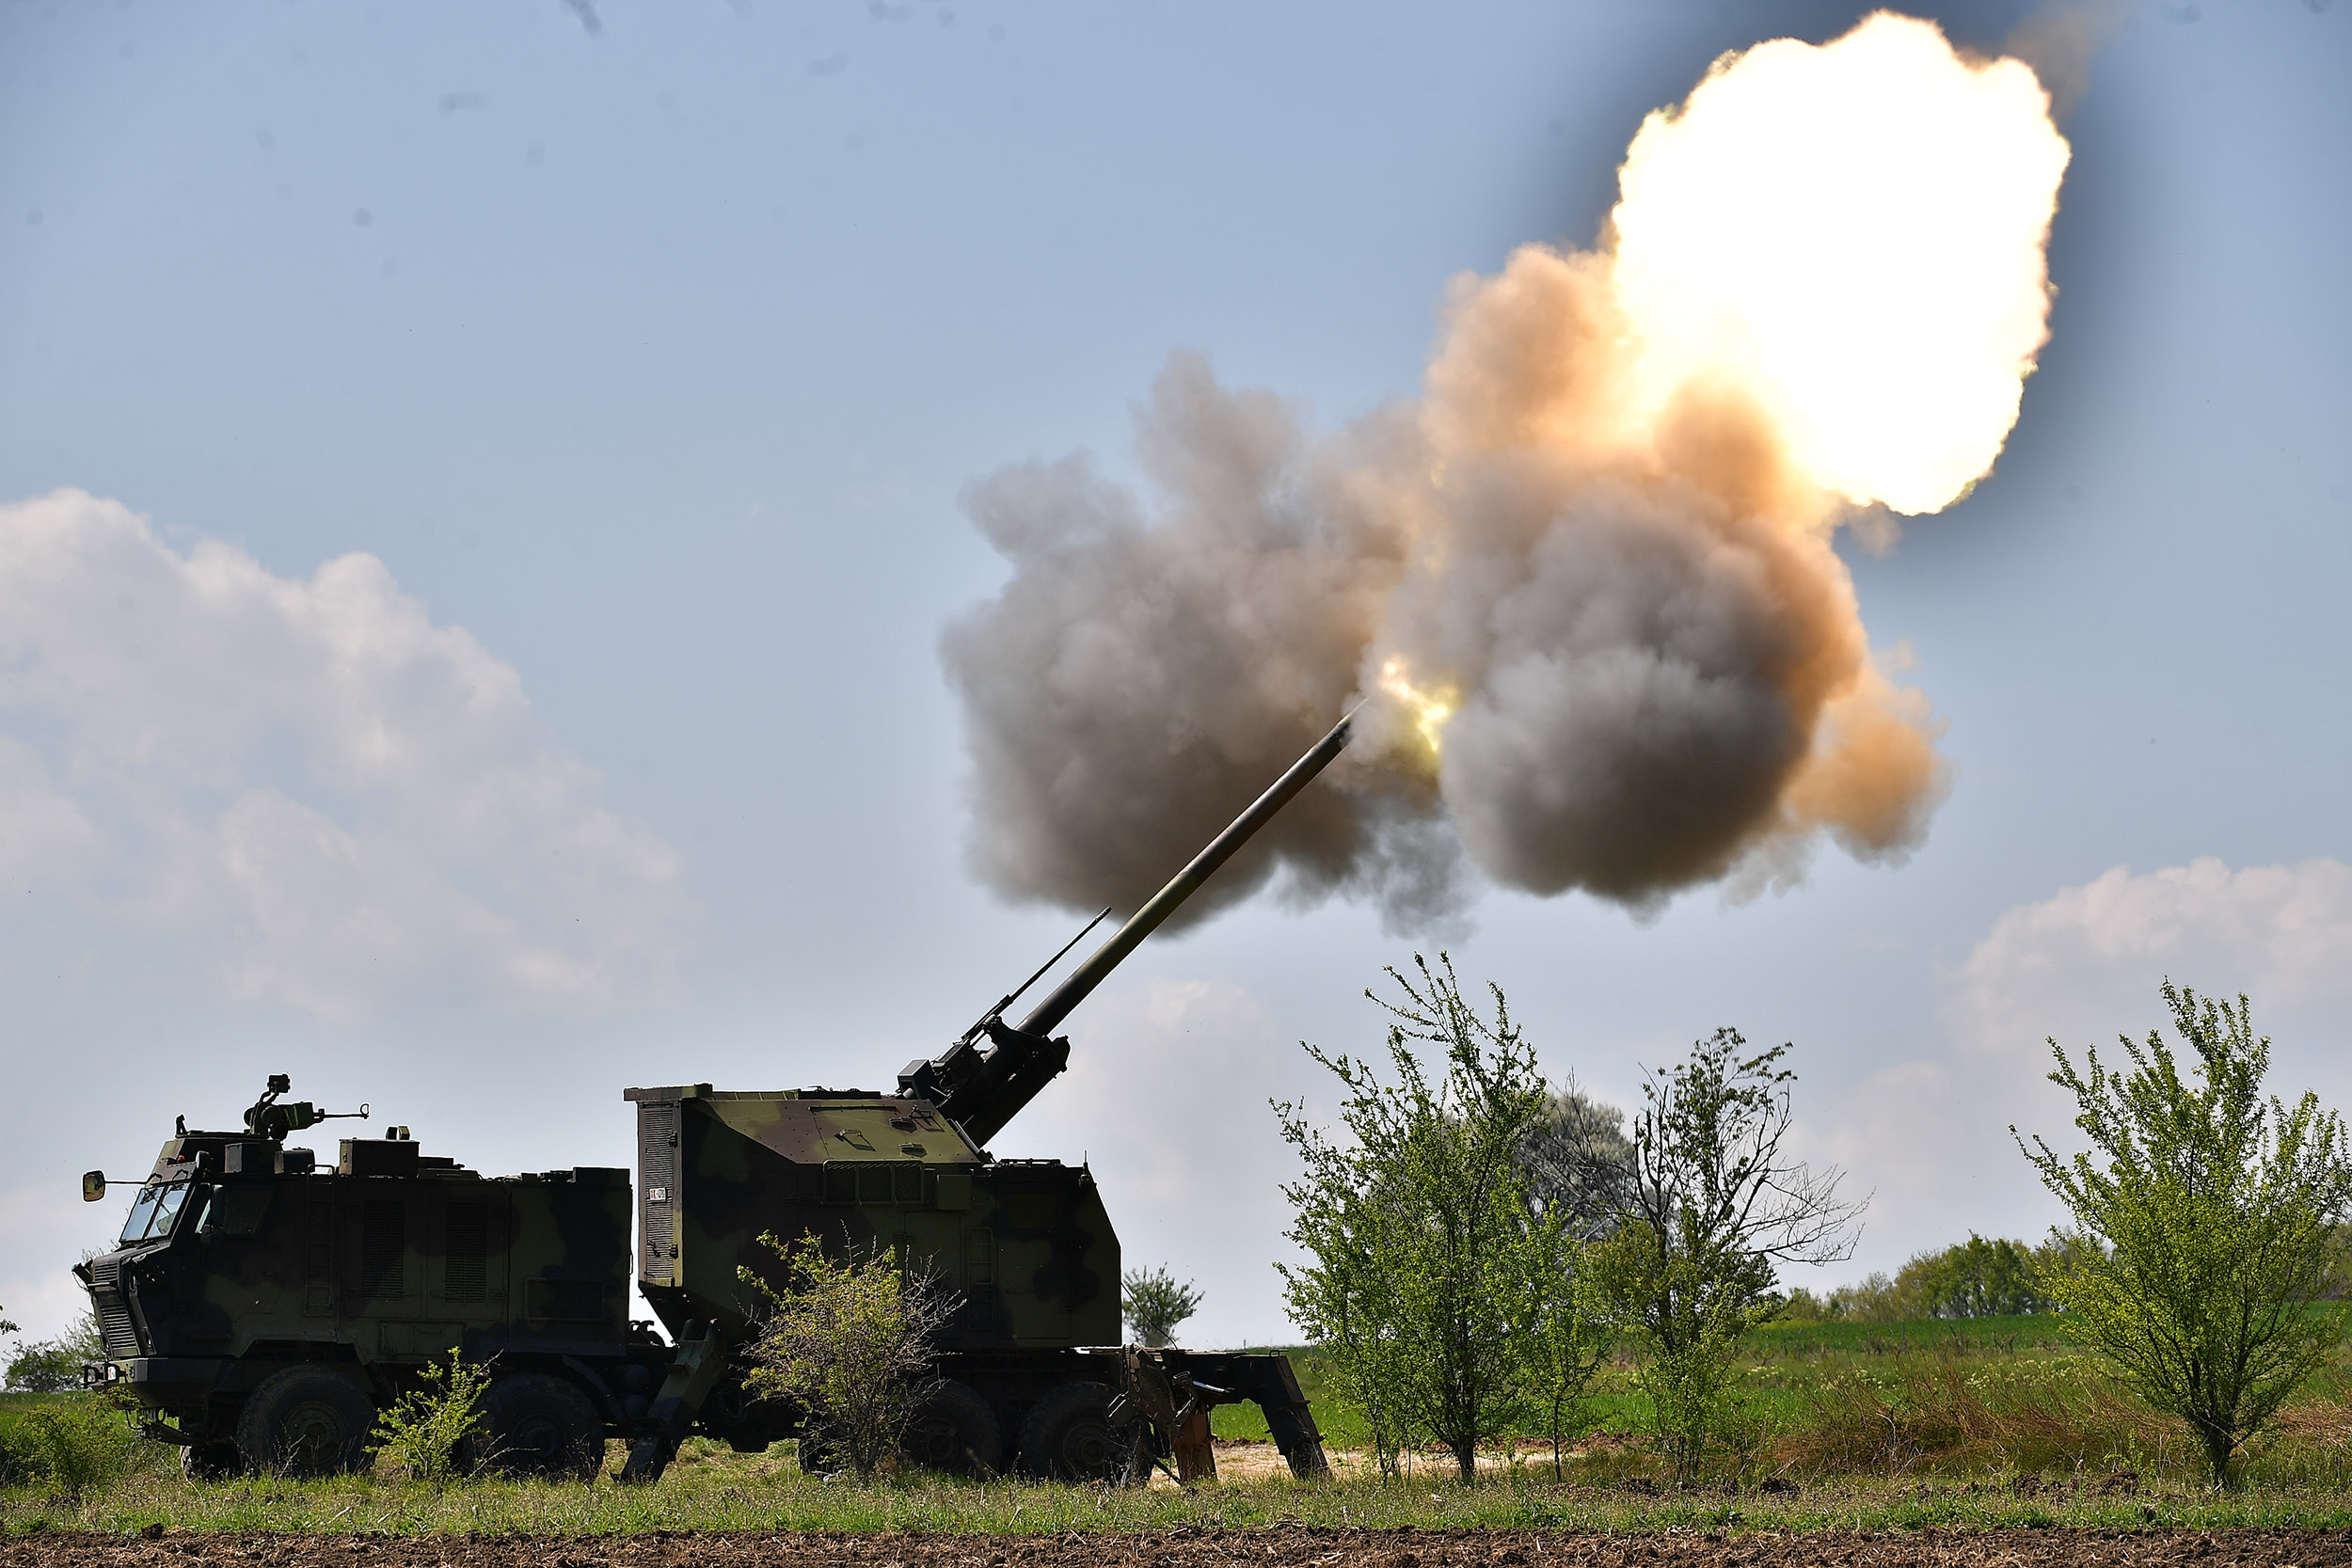 Serbian Army Extends NORA-B52 M15 Artillery Range to 40 km